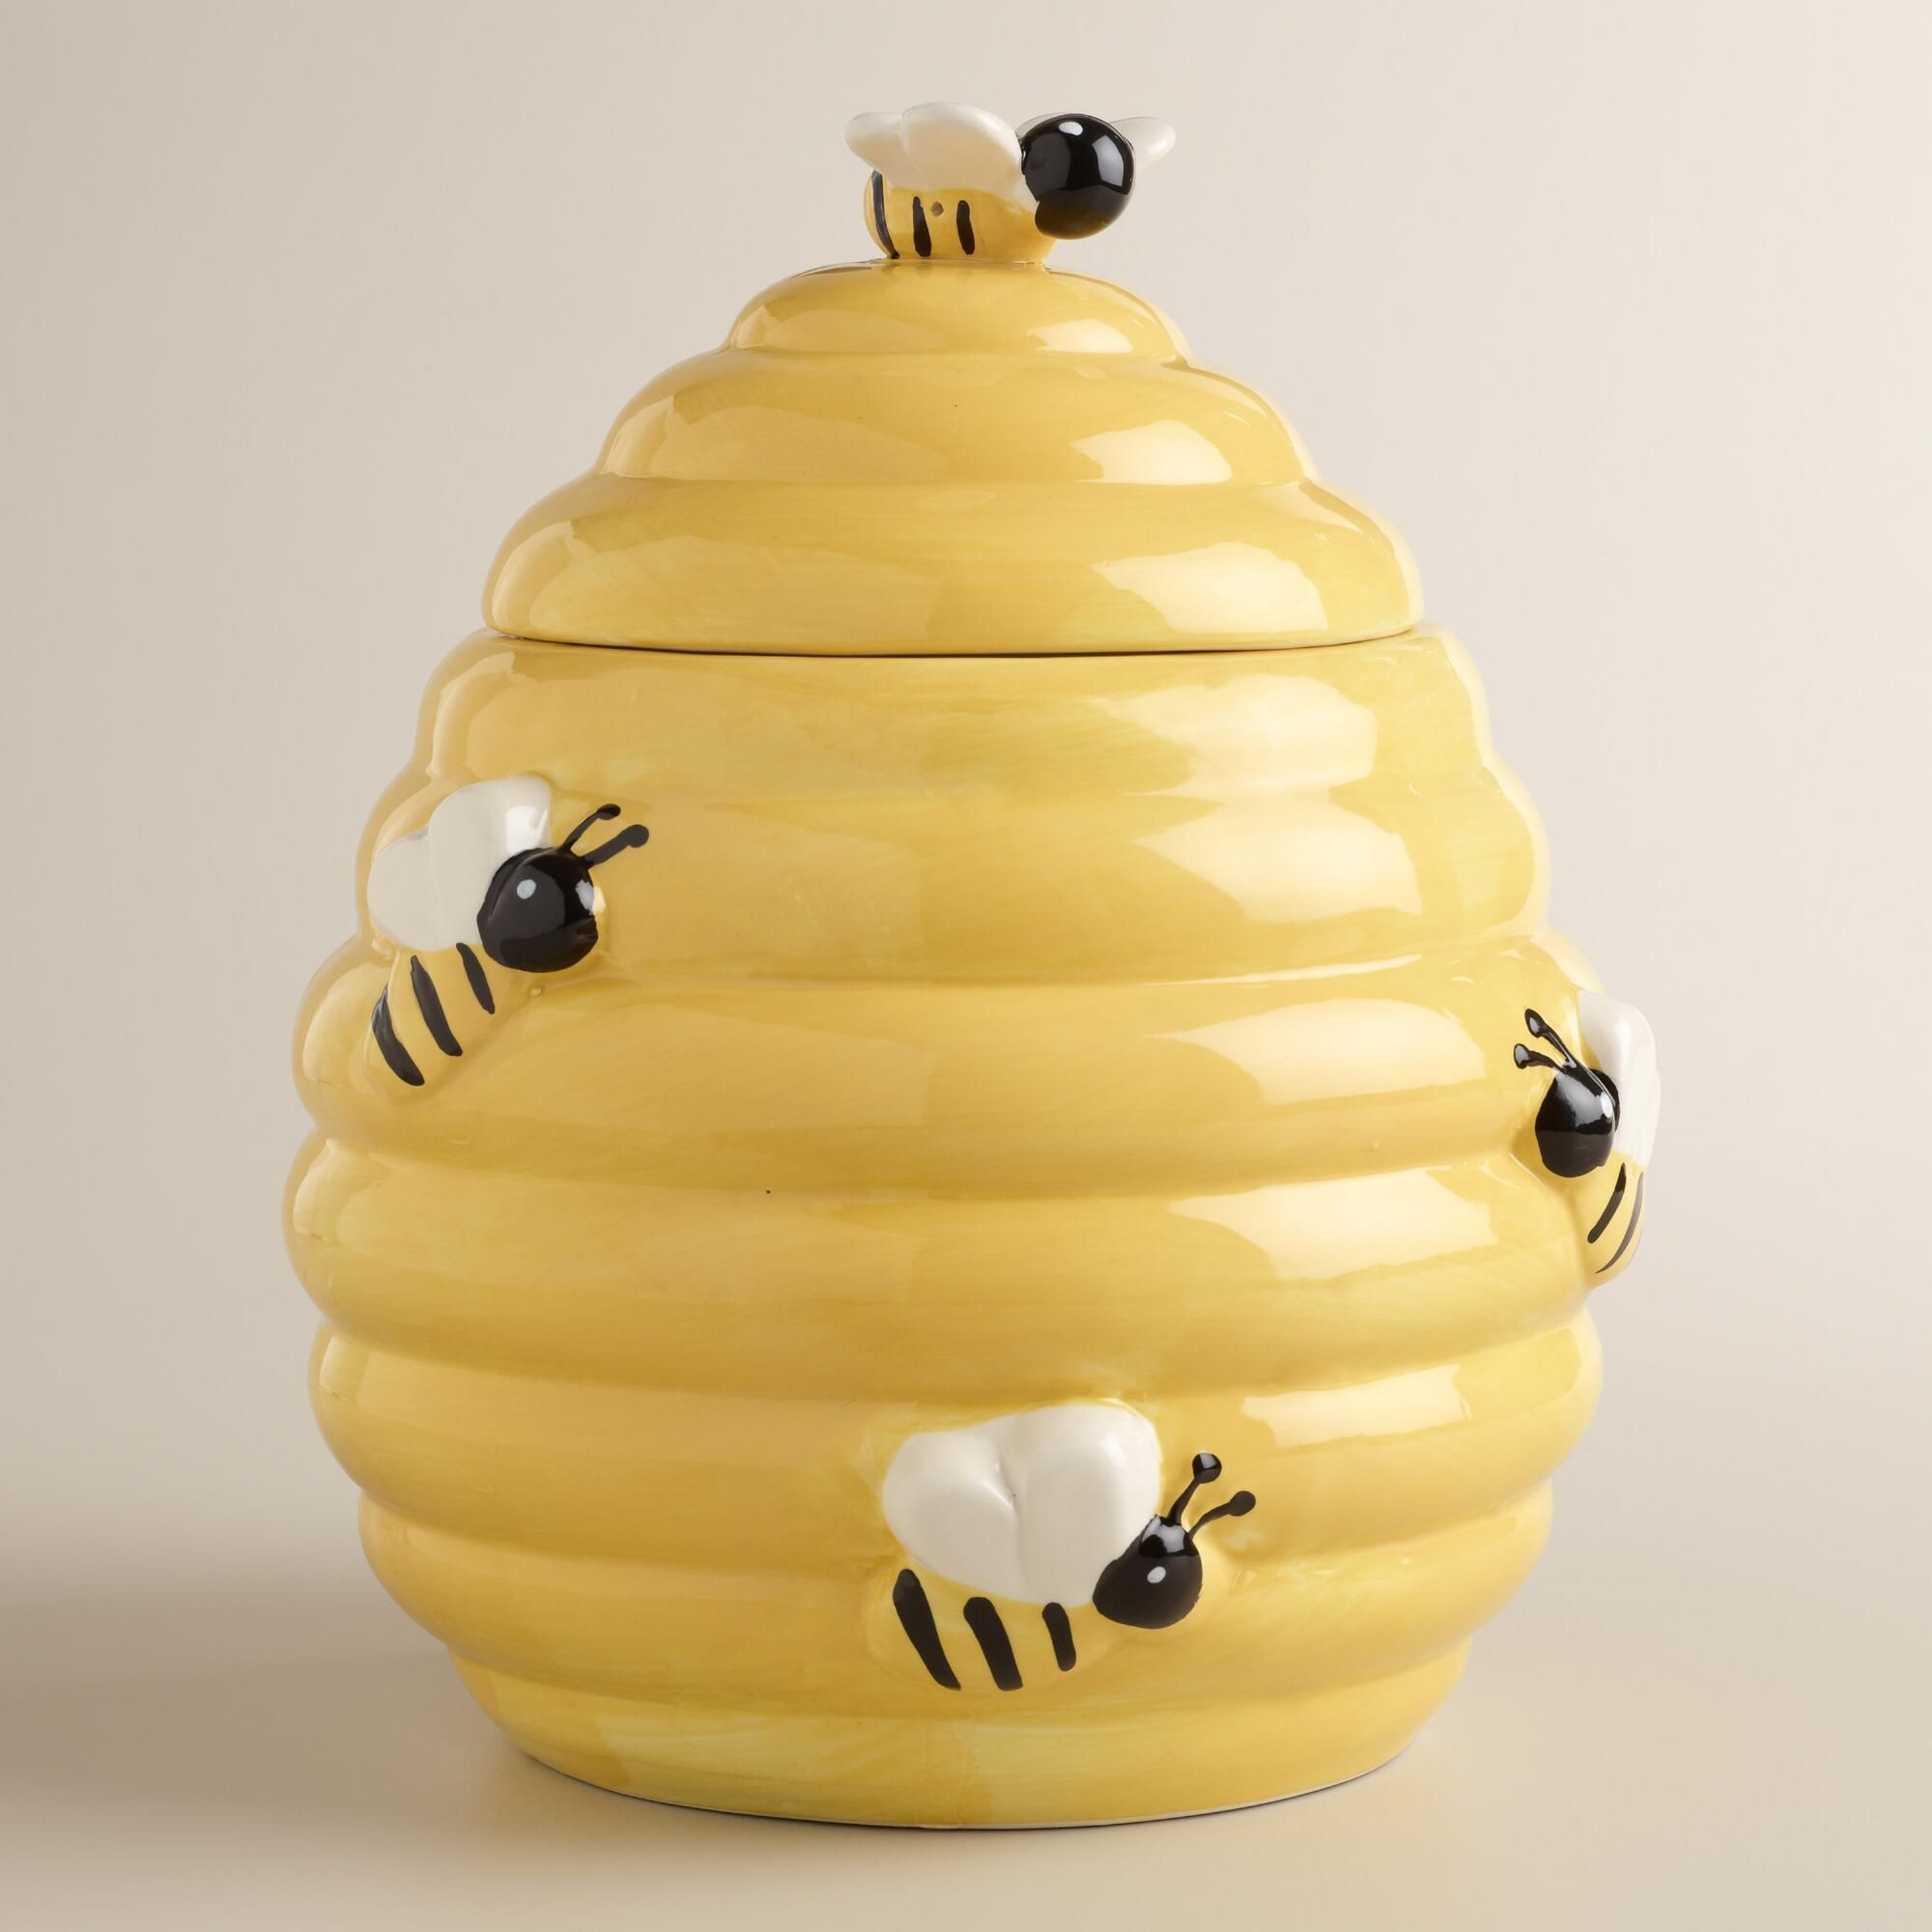 Cleverly Designed In The Style Of A Hive With Adorable Flying Bees This Buzz